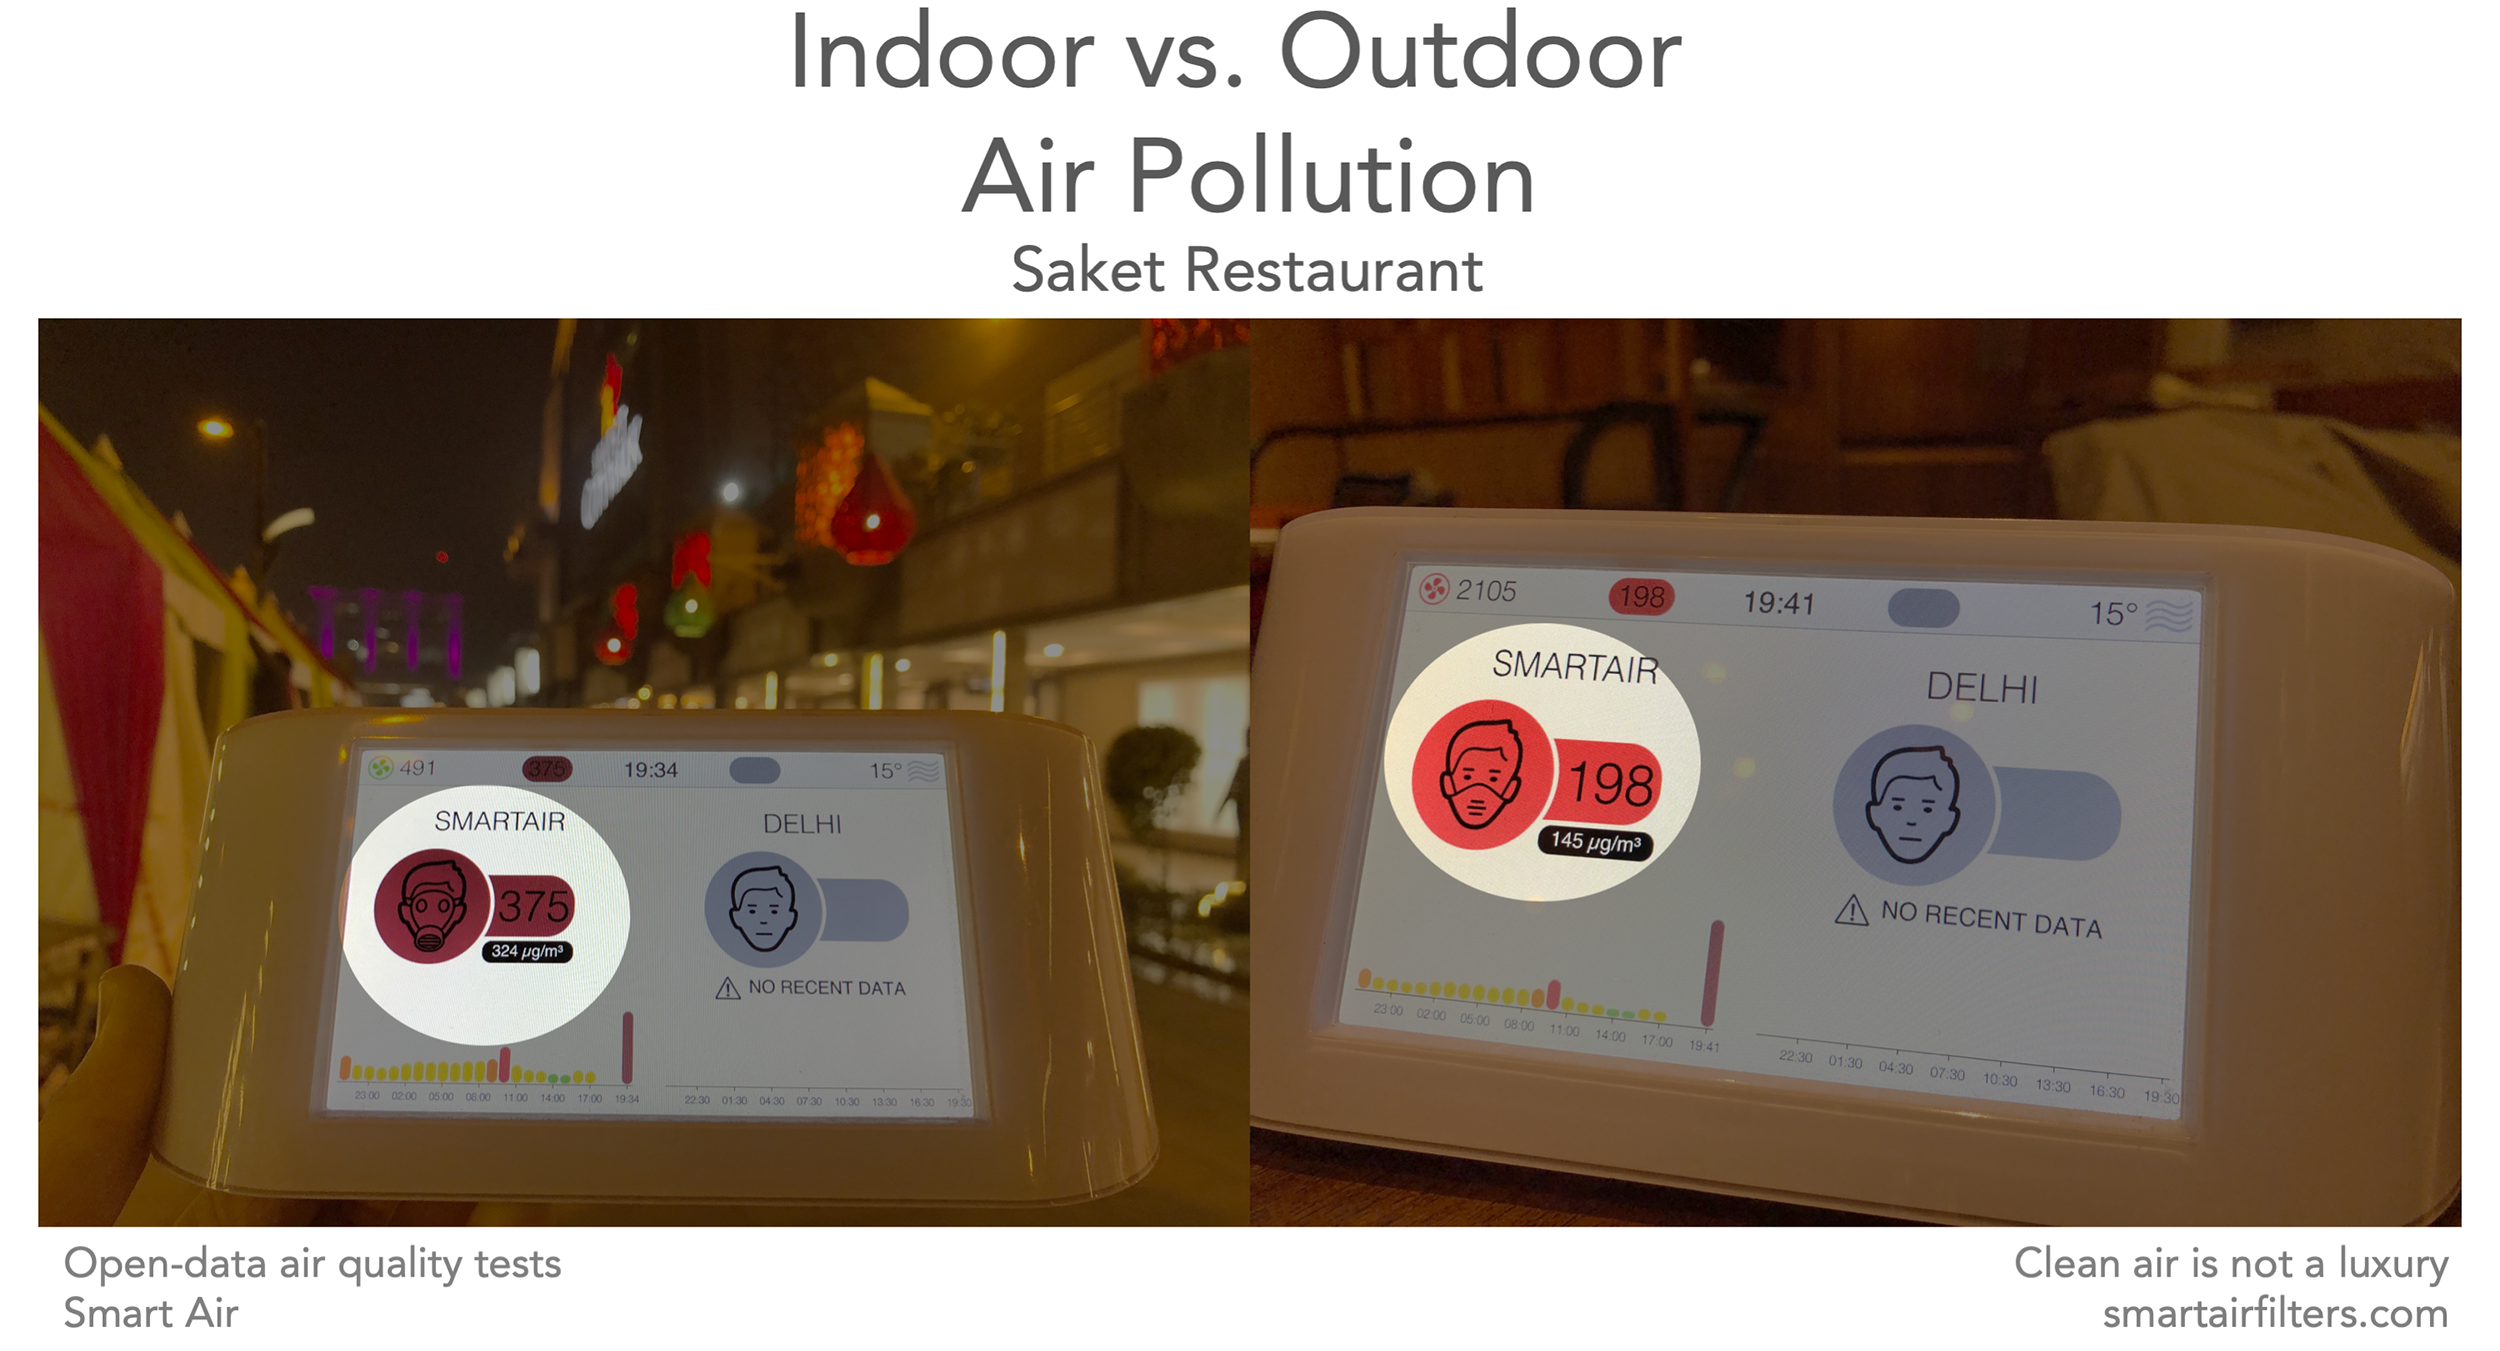 Indoor vs. outdoor air pollution at Saket Restaurant